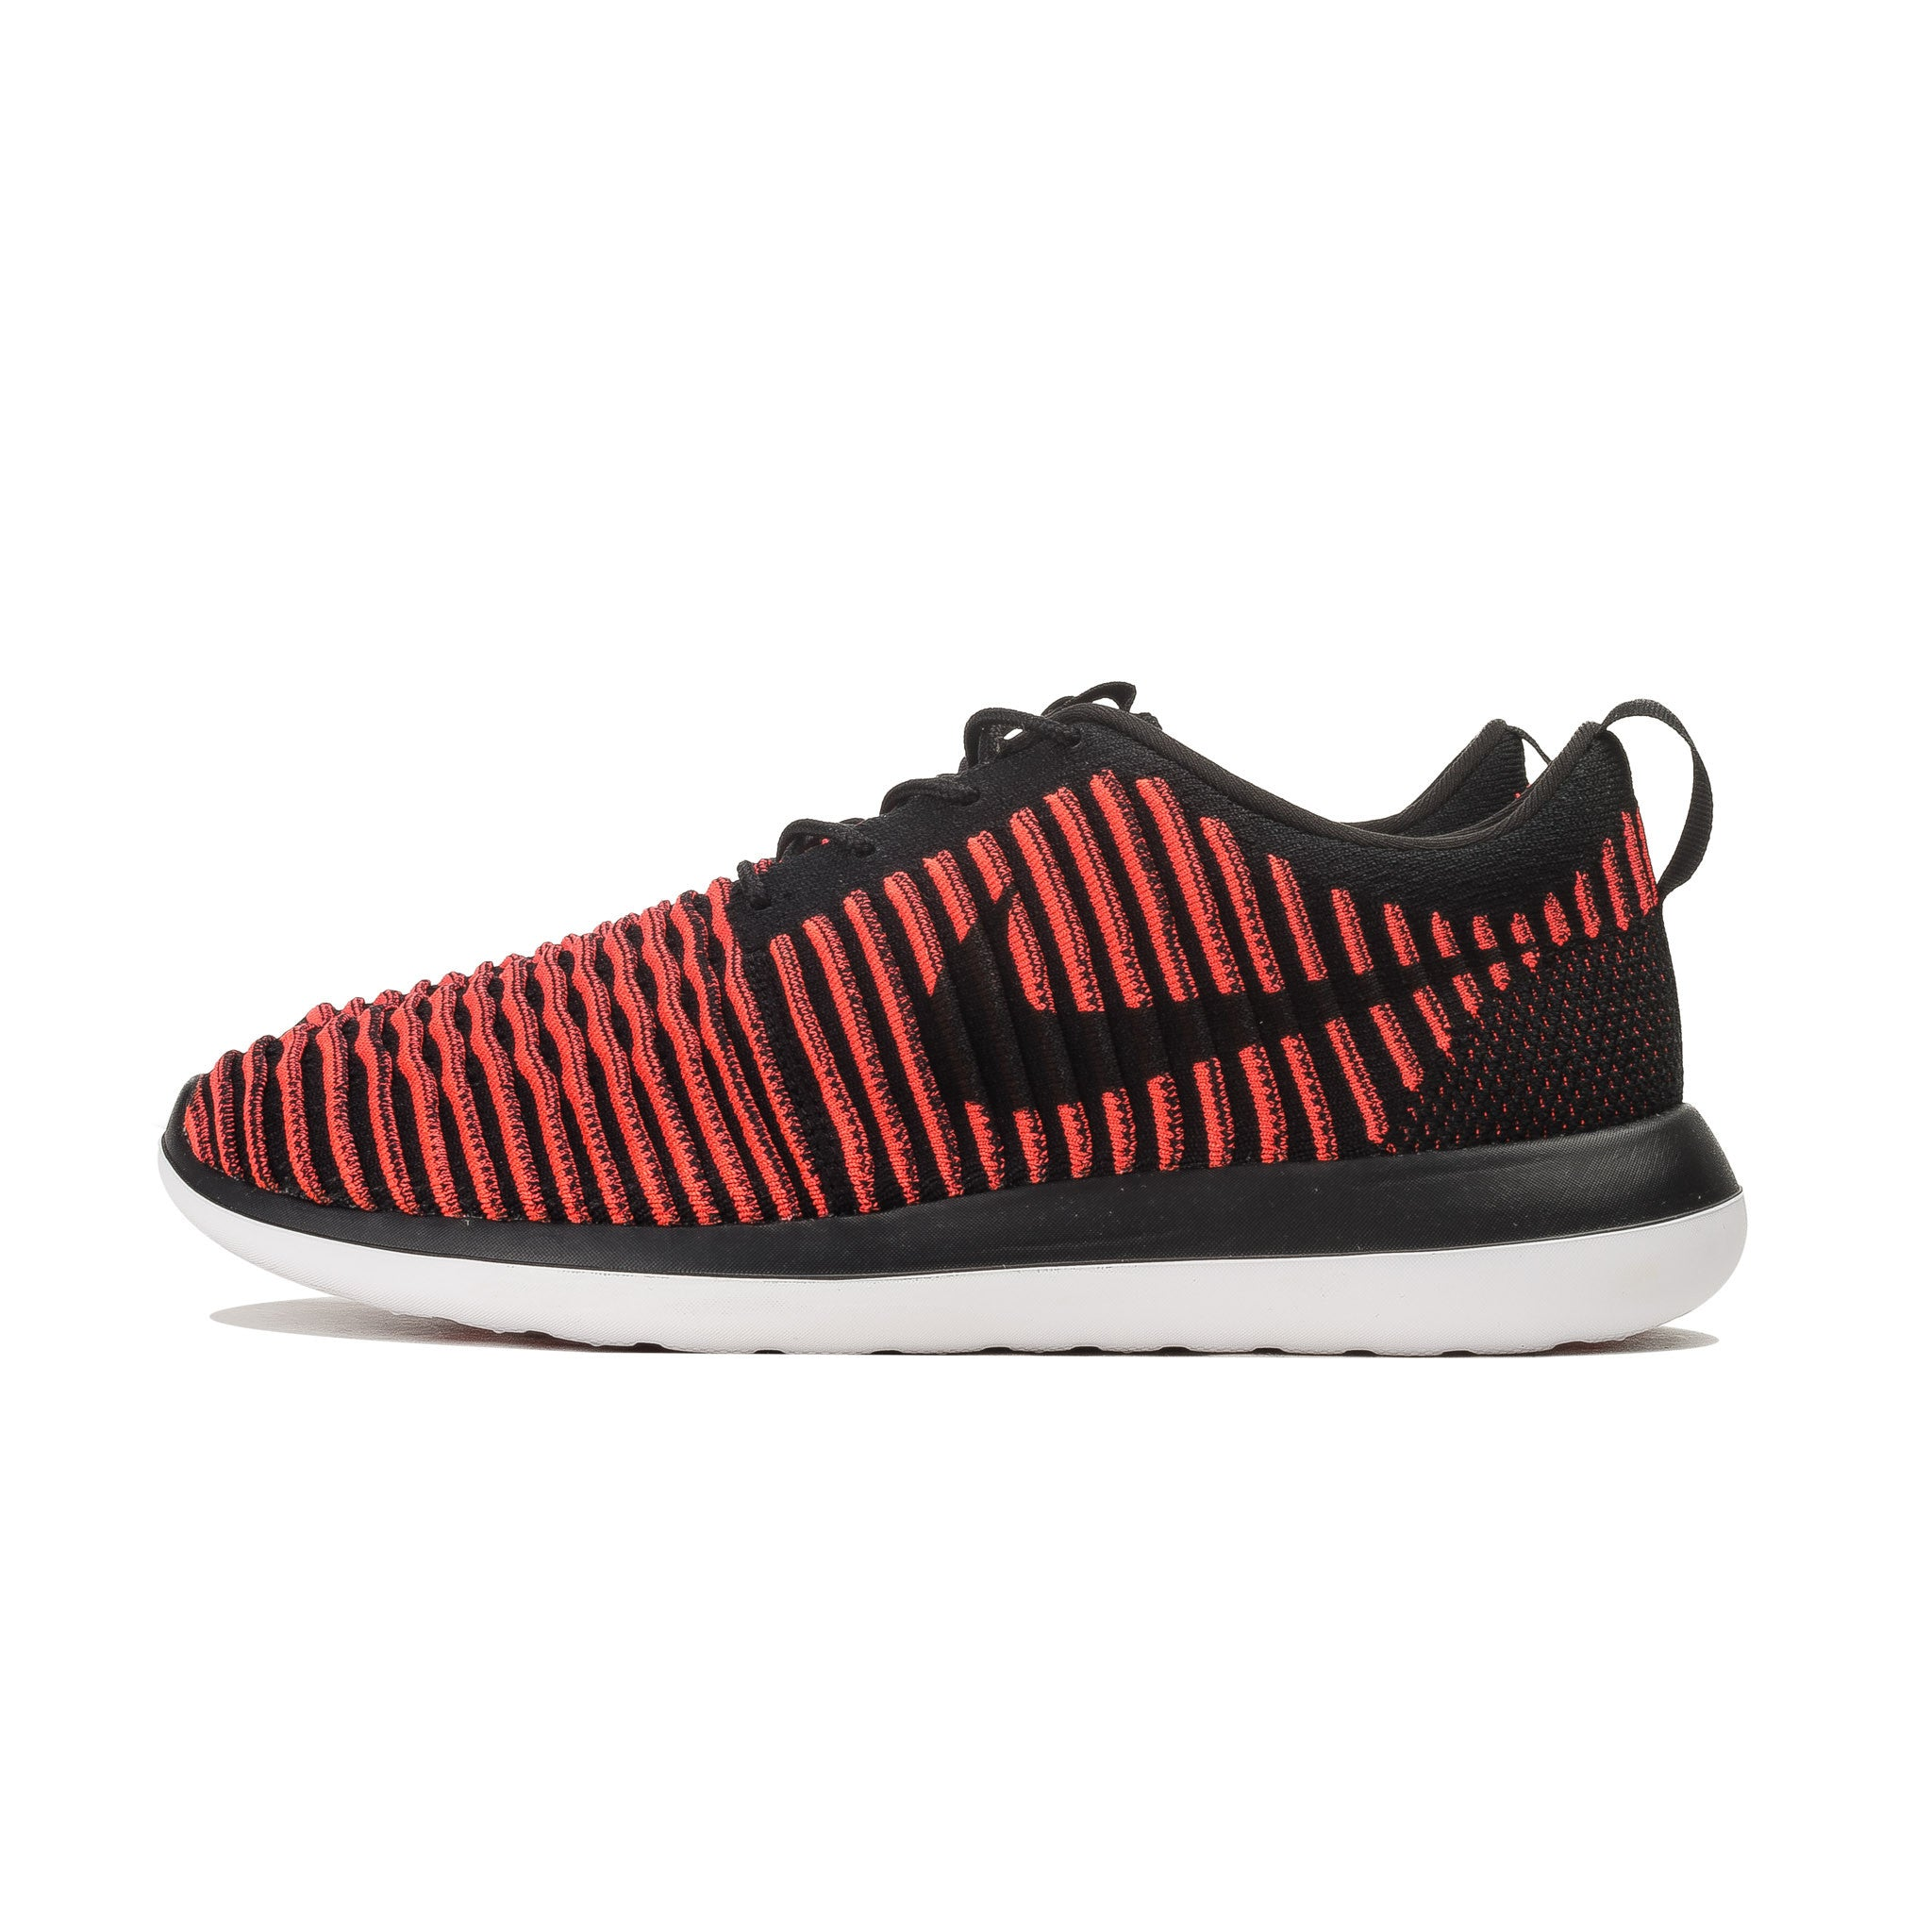 Nike Roshe Two Flyknit 844833-006 Black